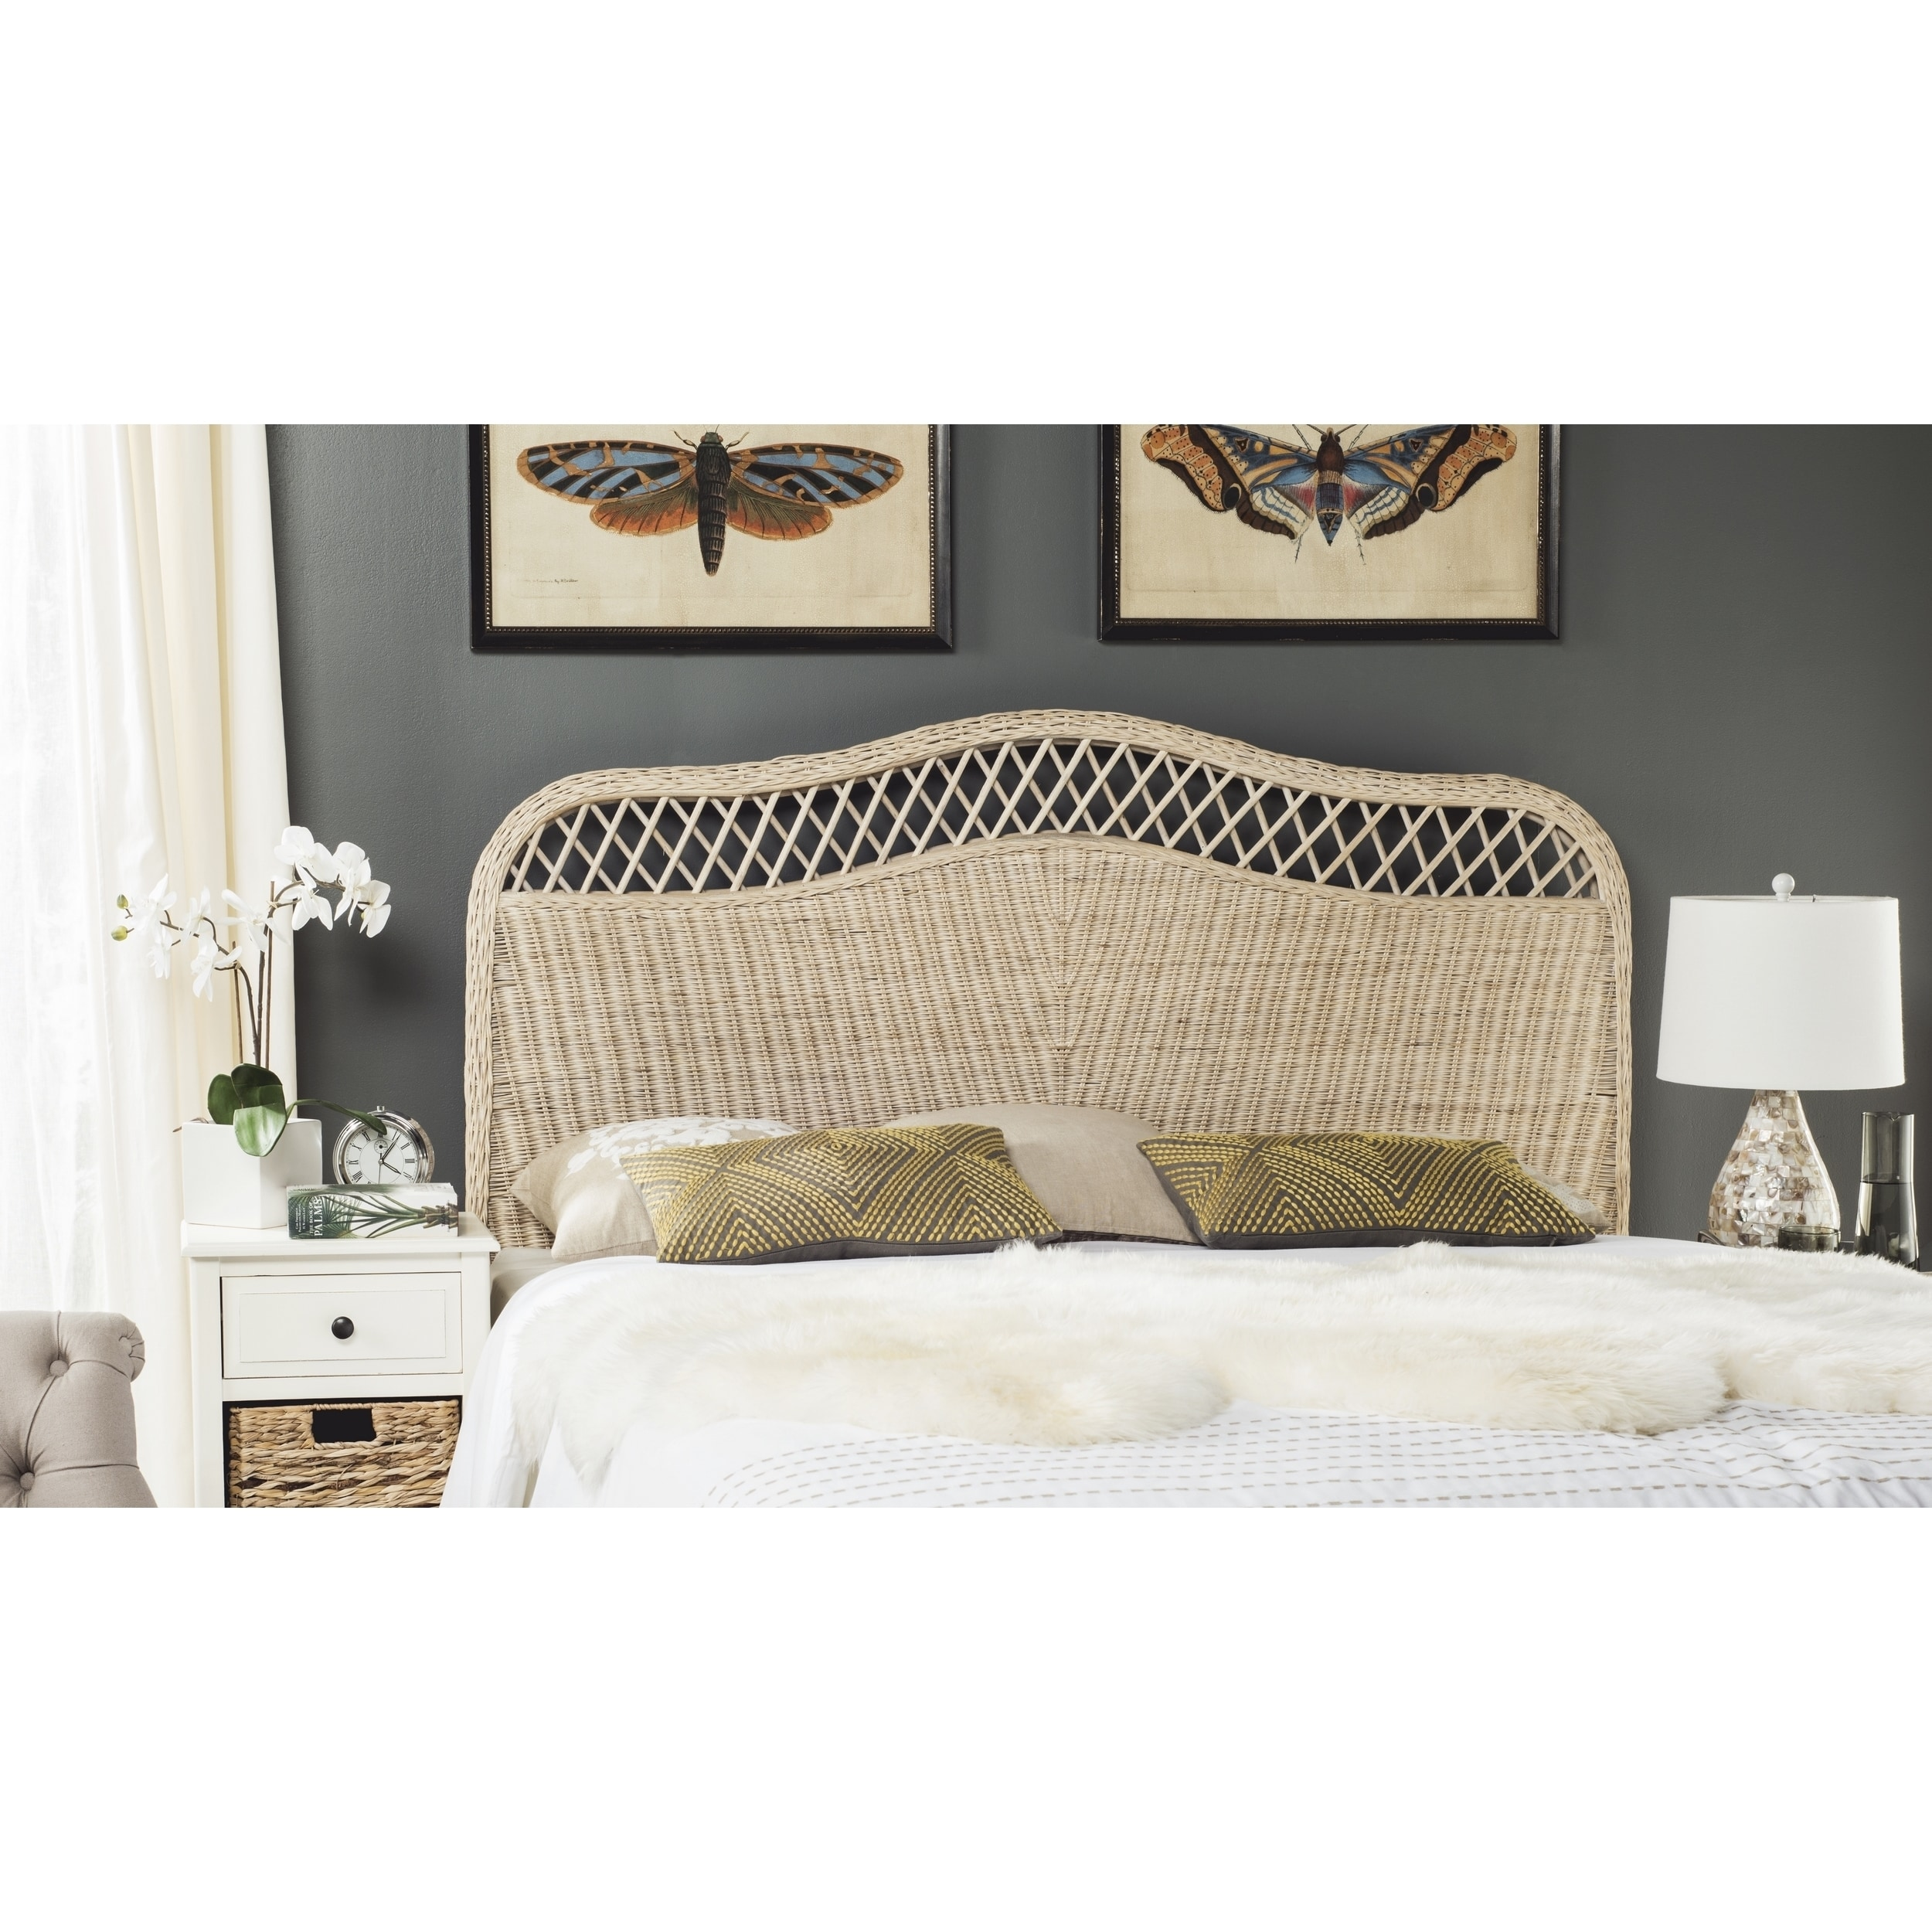 Shop Safavieh Sephina White Washed Rattan Headboard Queen On